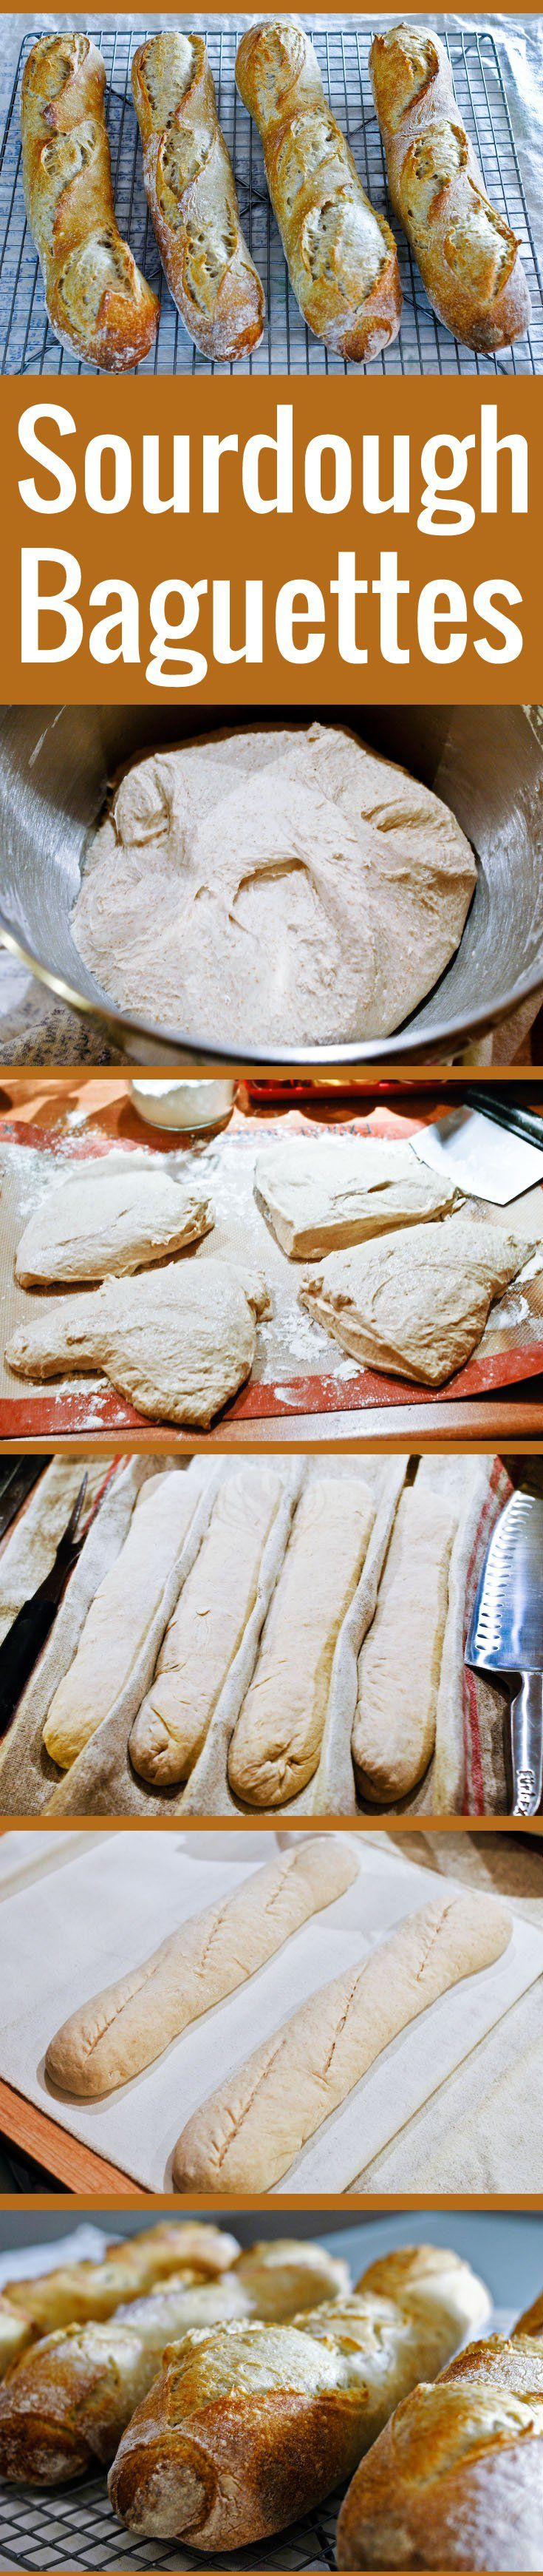 Follow this easy step-by-step baguette recipe from a French food blogger, and make perfect baguettes -- the kind you can only find in Paris bakeries!